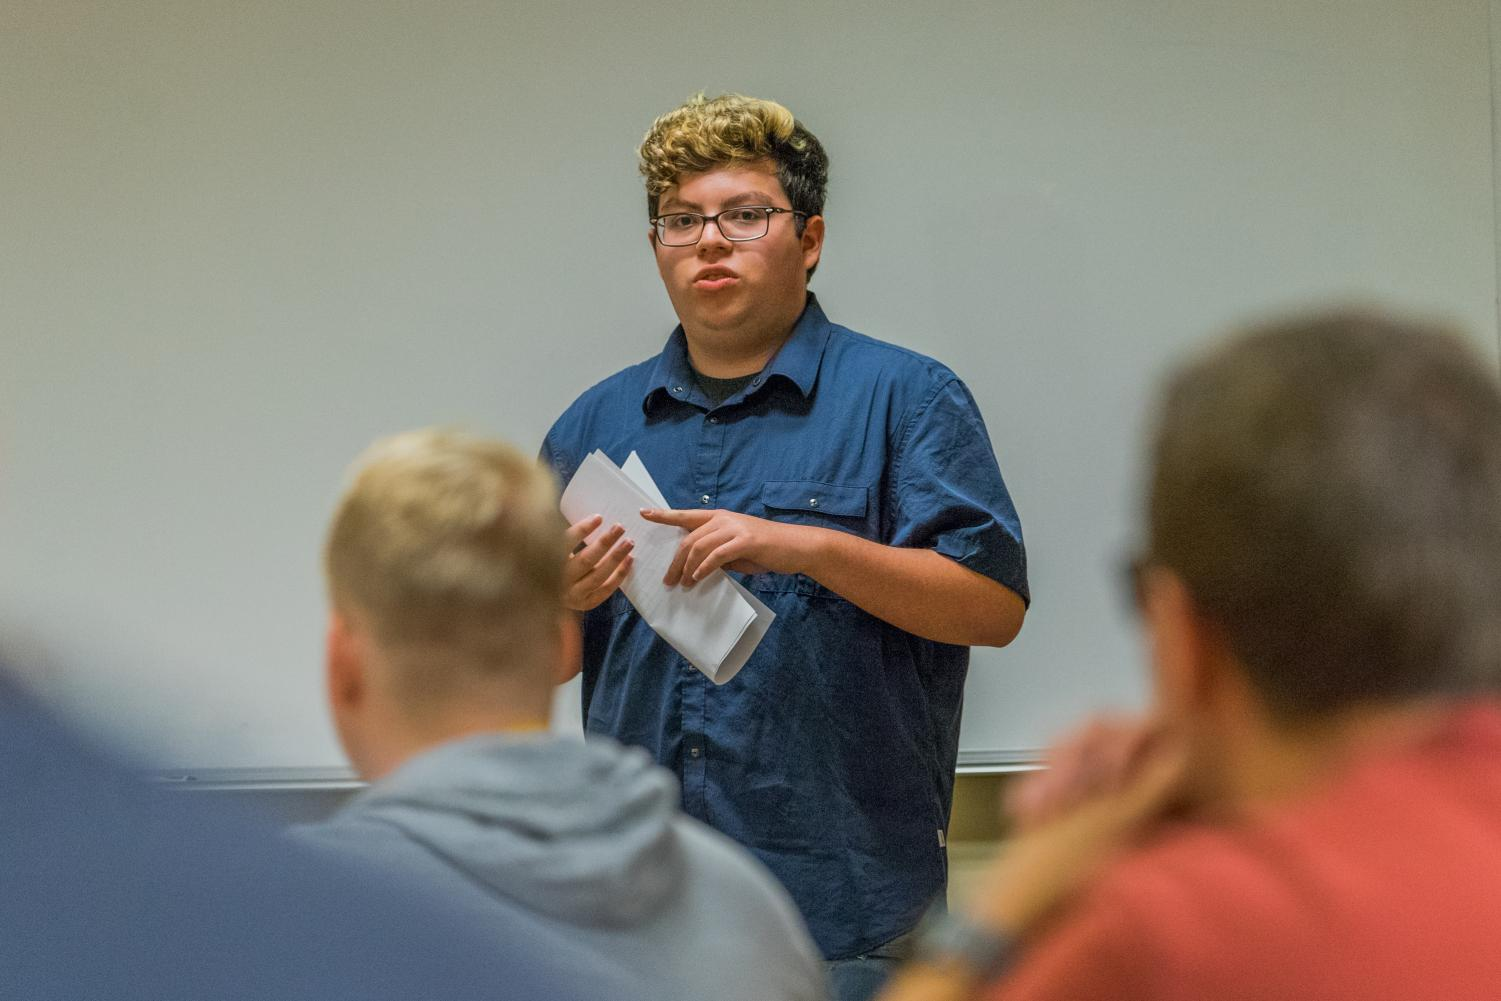 Jonathan Jimenez said he feels turning the College of Education into a school negatively impacts Marquette's reputation.